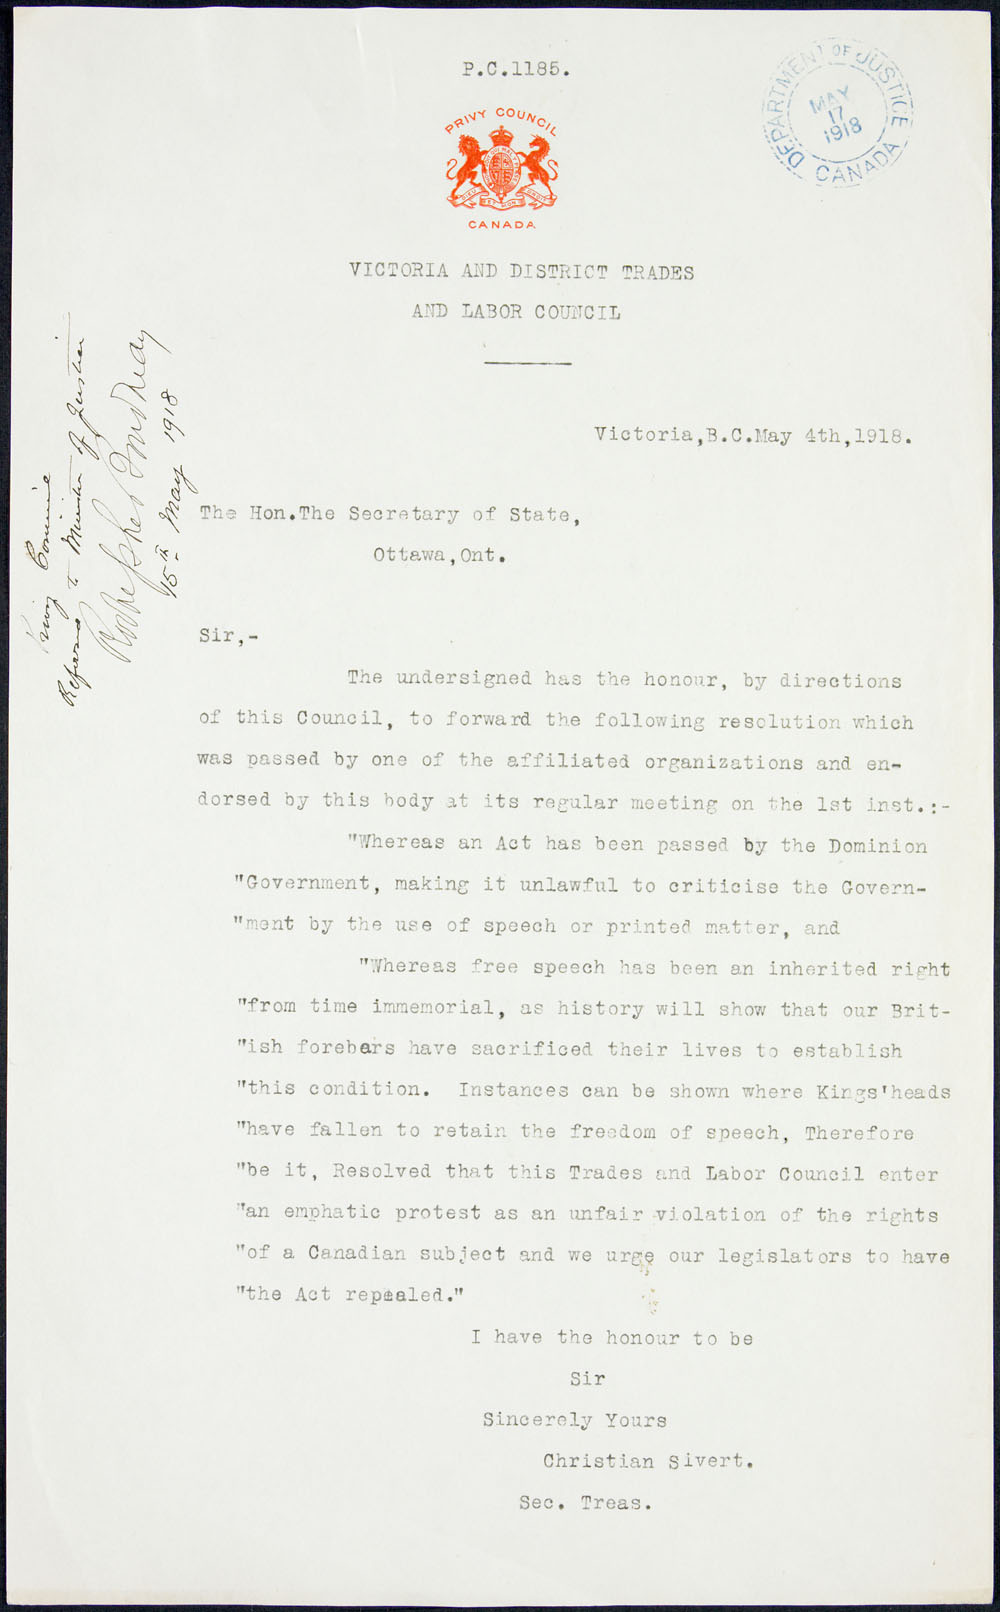 Privy Council document addressed to the Secretary of State, quoting a resolution of the Victoria and District Trades and Labour Council in support of freedom of speech in Canada, May 4, 1918